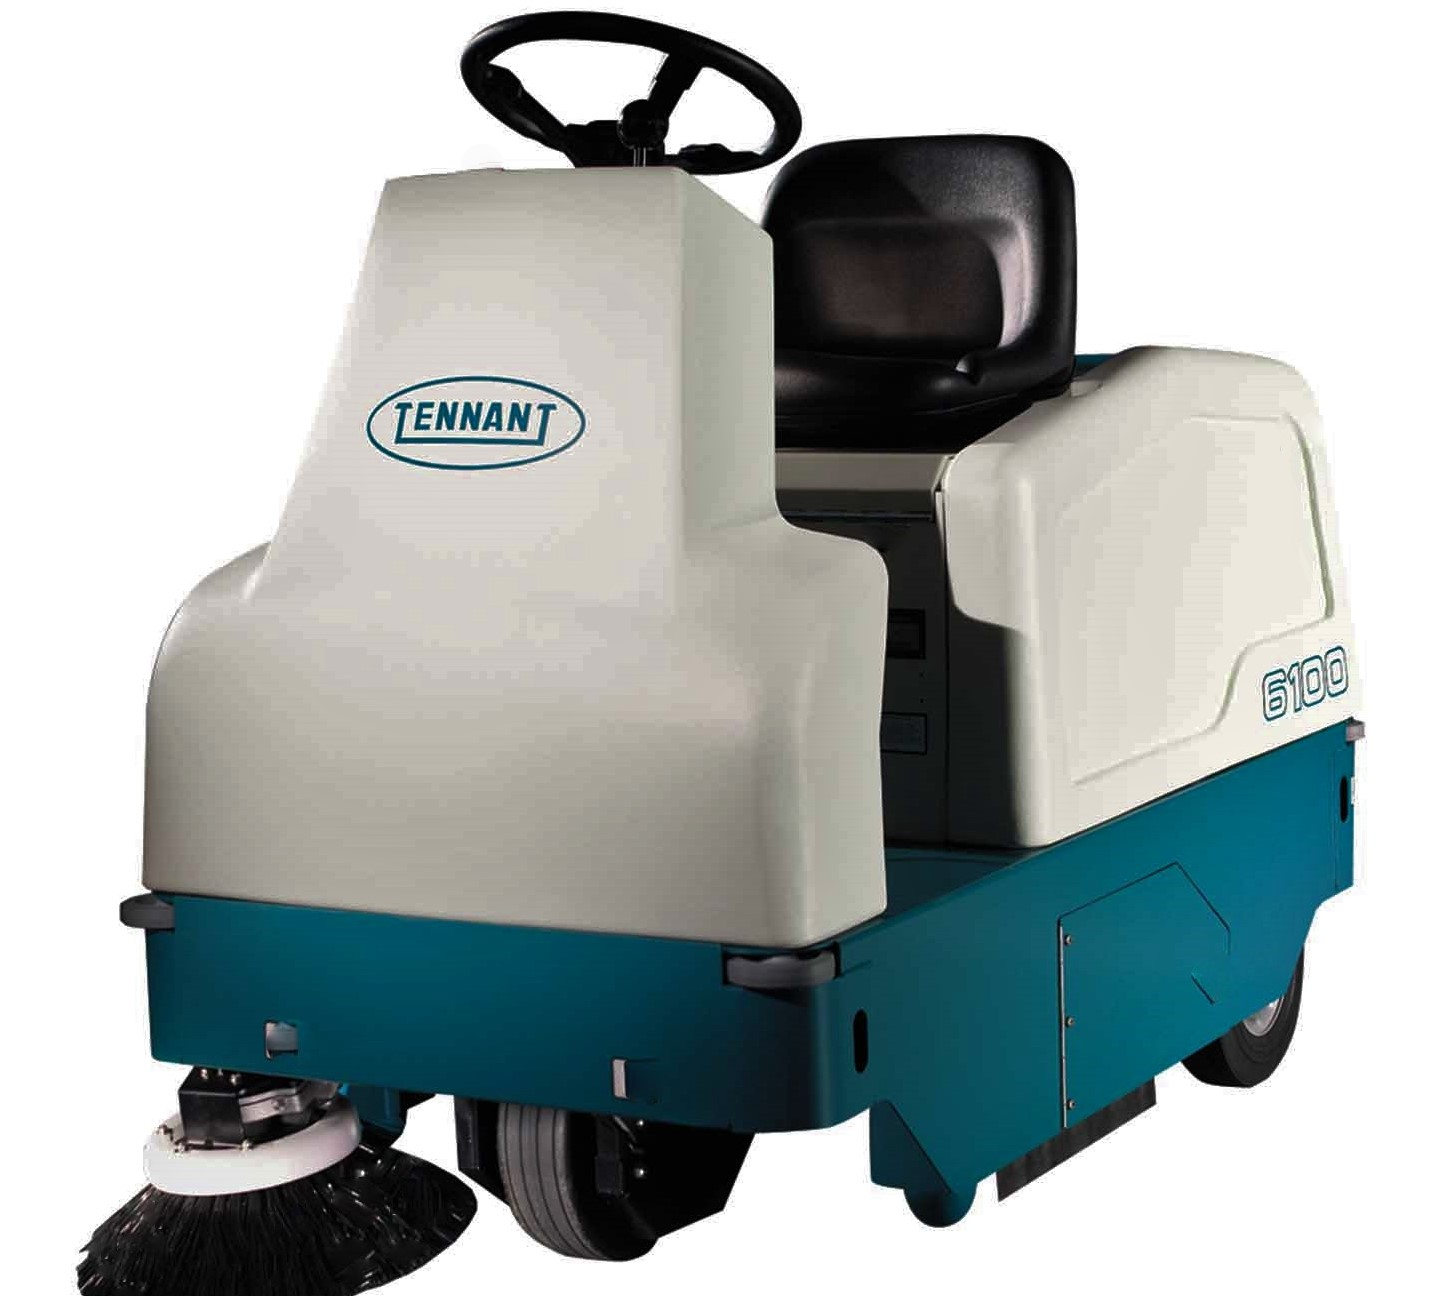 Tennant 6100 Rider Compact Floor Sweeper